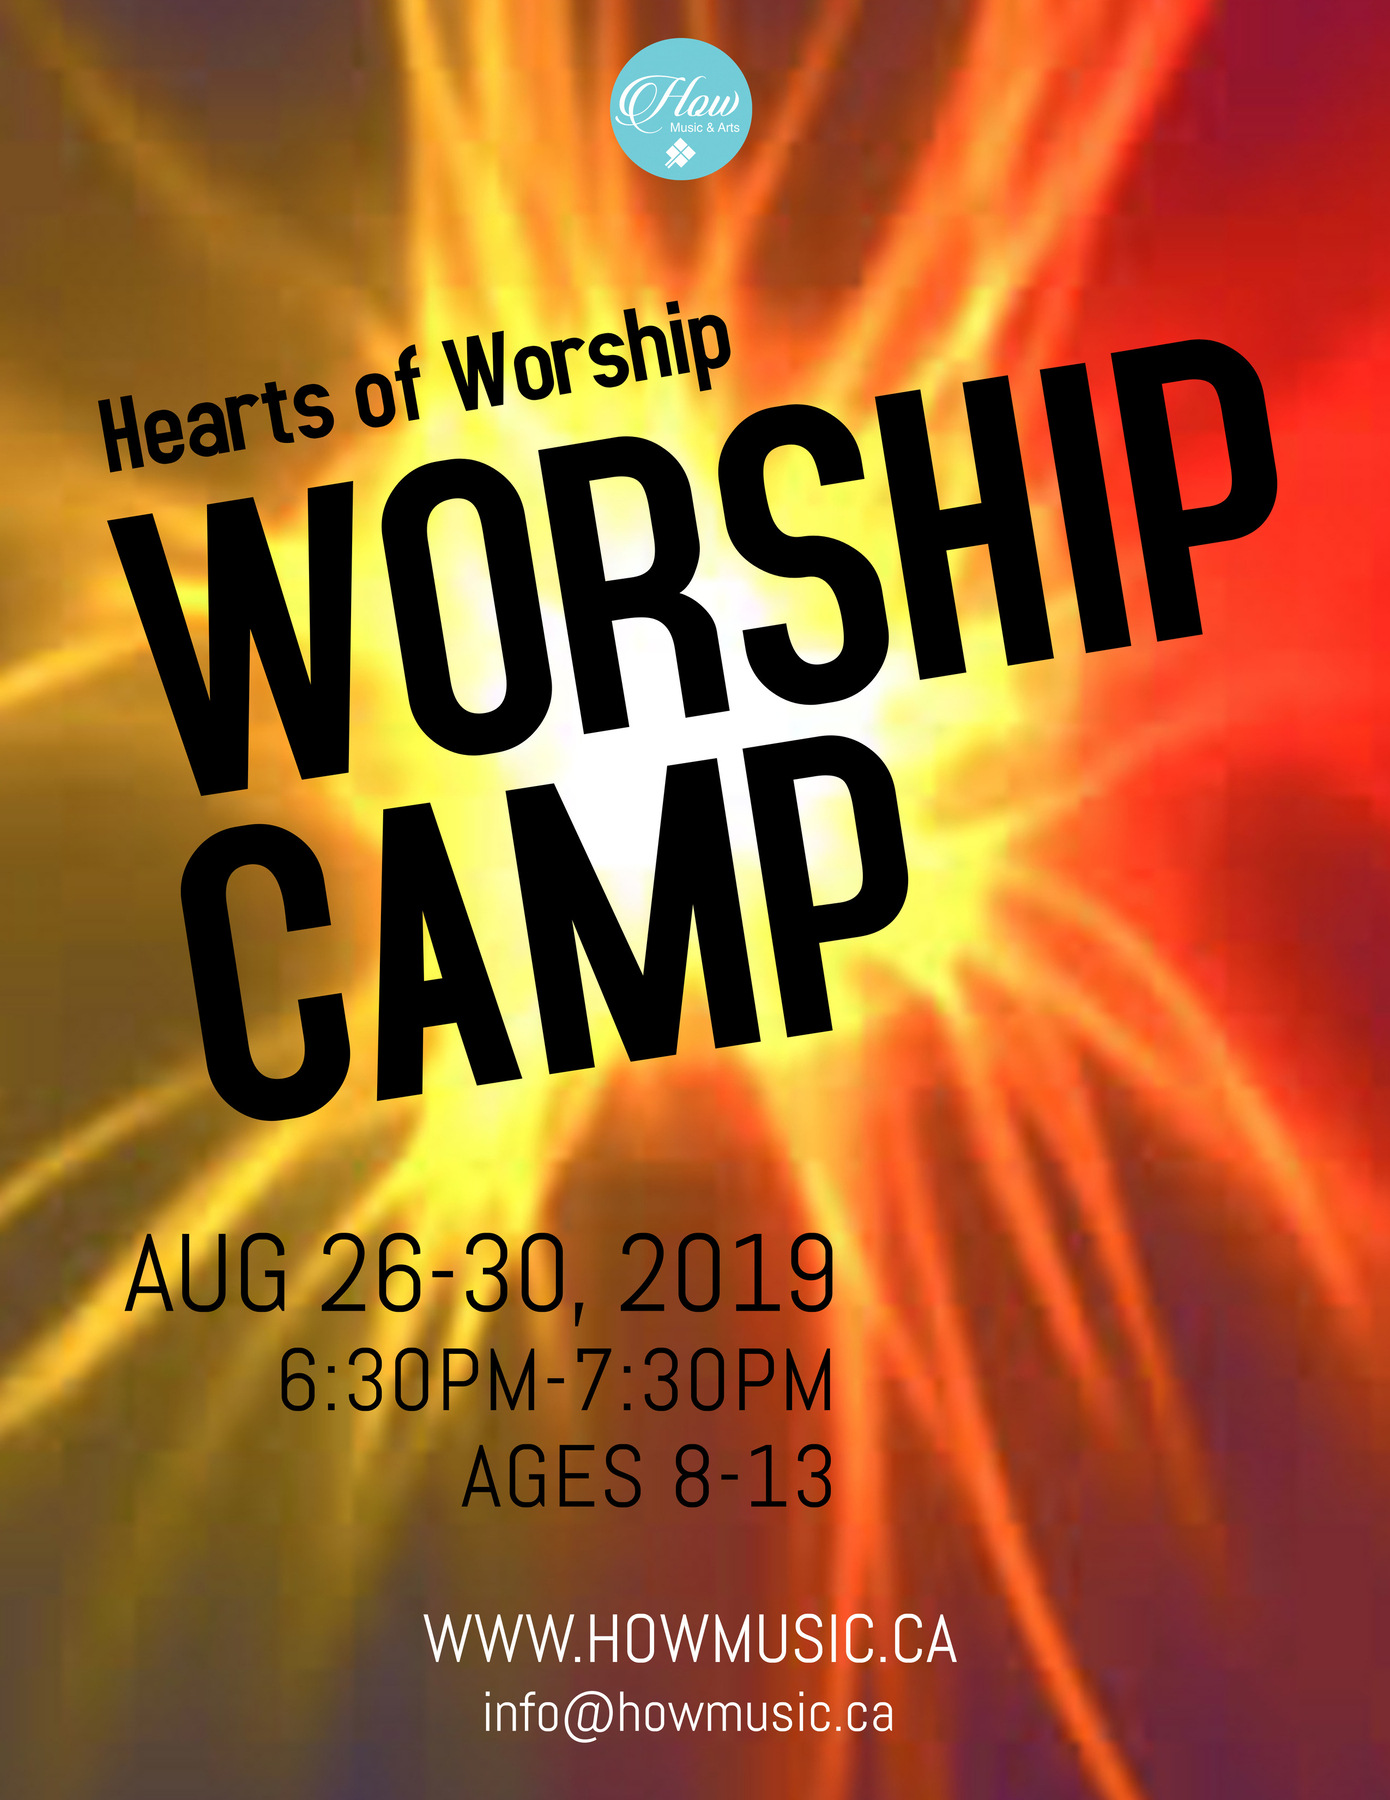 how-music-and-arts-summer-worship-camp-2019.jpg